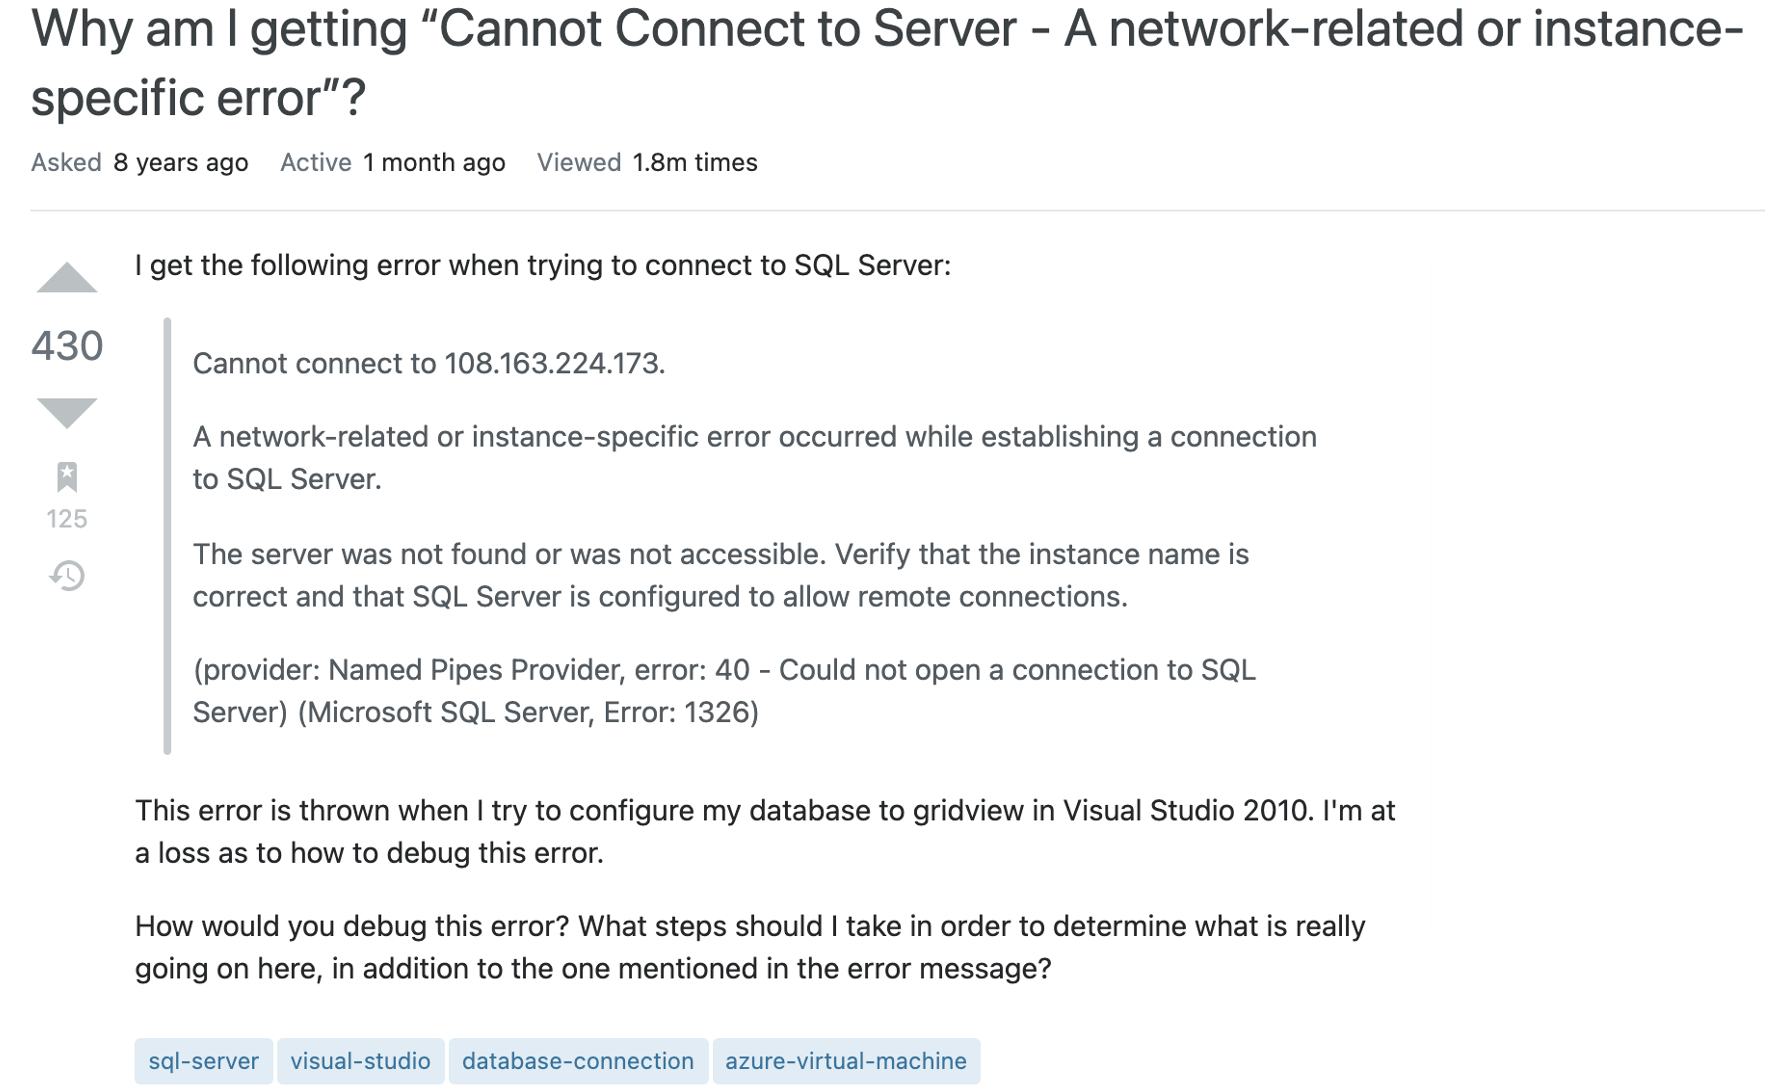 Question text reads I get the following error when trying to connect to SQL Server:  Cannot connect to 108.163.224.173.  A network-related or instance-specific error occurred while establishing a connection to SQL Server.  The server was not found or was not accessible. Verify that the instance name is correct and that SQL Server is configured to allow remote connections.  (provider: Named Pipes Provider, error: 40 - Could not open a connection to SQL Server) (Microsoft SQL Server, Error: 1326)  This error is thrown when I try to configure my database to gridview in Visual Studio 2010. I'm at a loss as to how to debug this error.  How would you debug this error? What steps should I take in order to determine what is really going on here, in addition to the one mentioned in the error message?